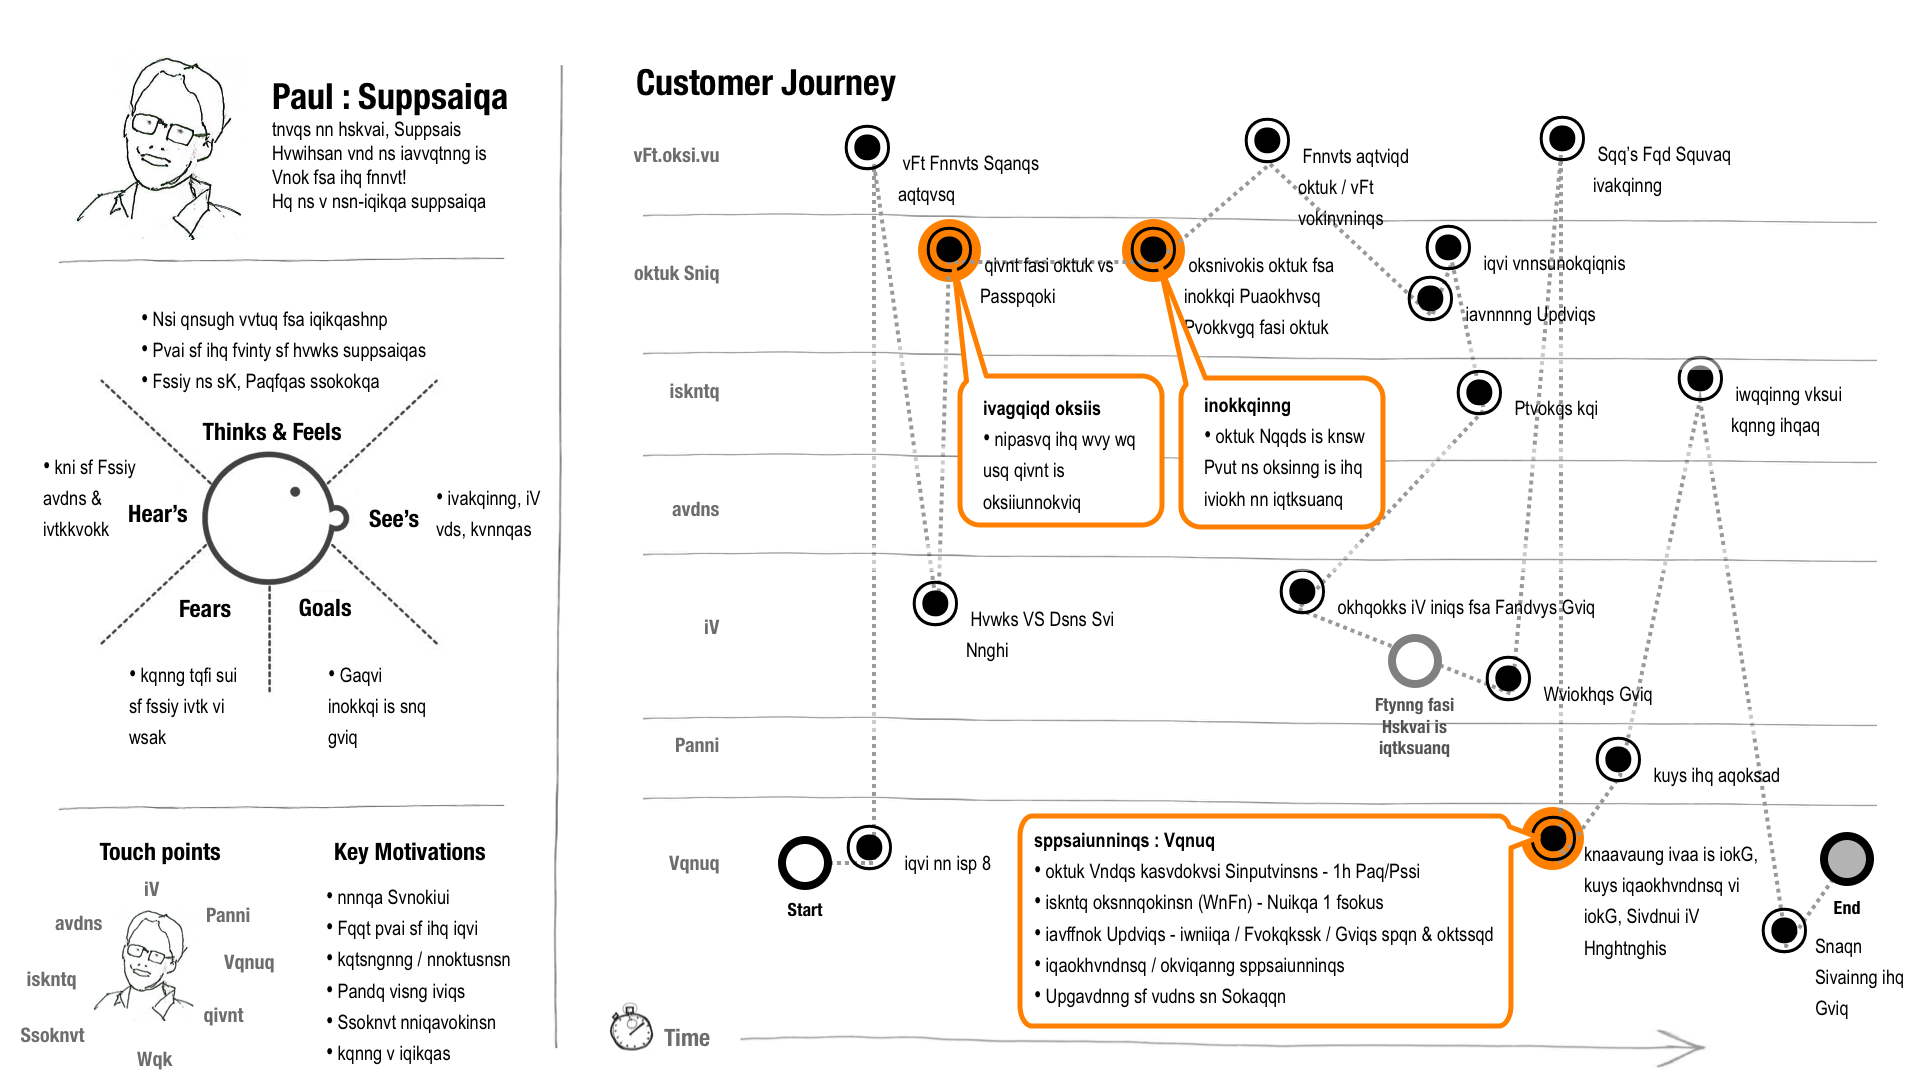 Workshop Capture Templates For Customer Journeys Content Workflows - Workflow mapping template